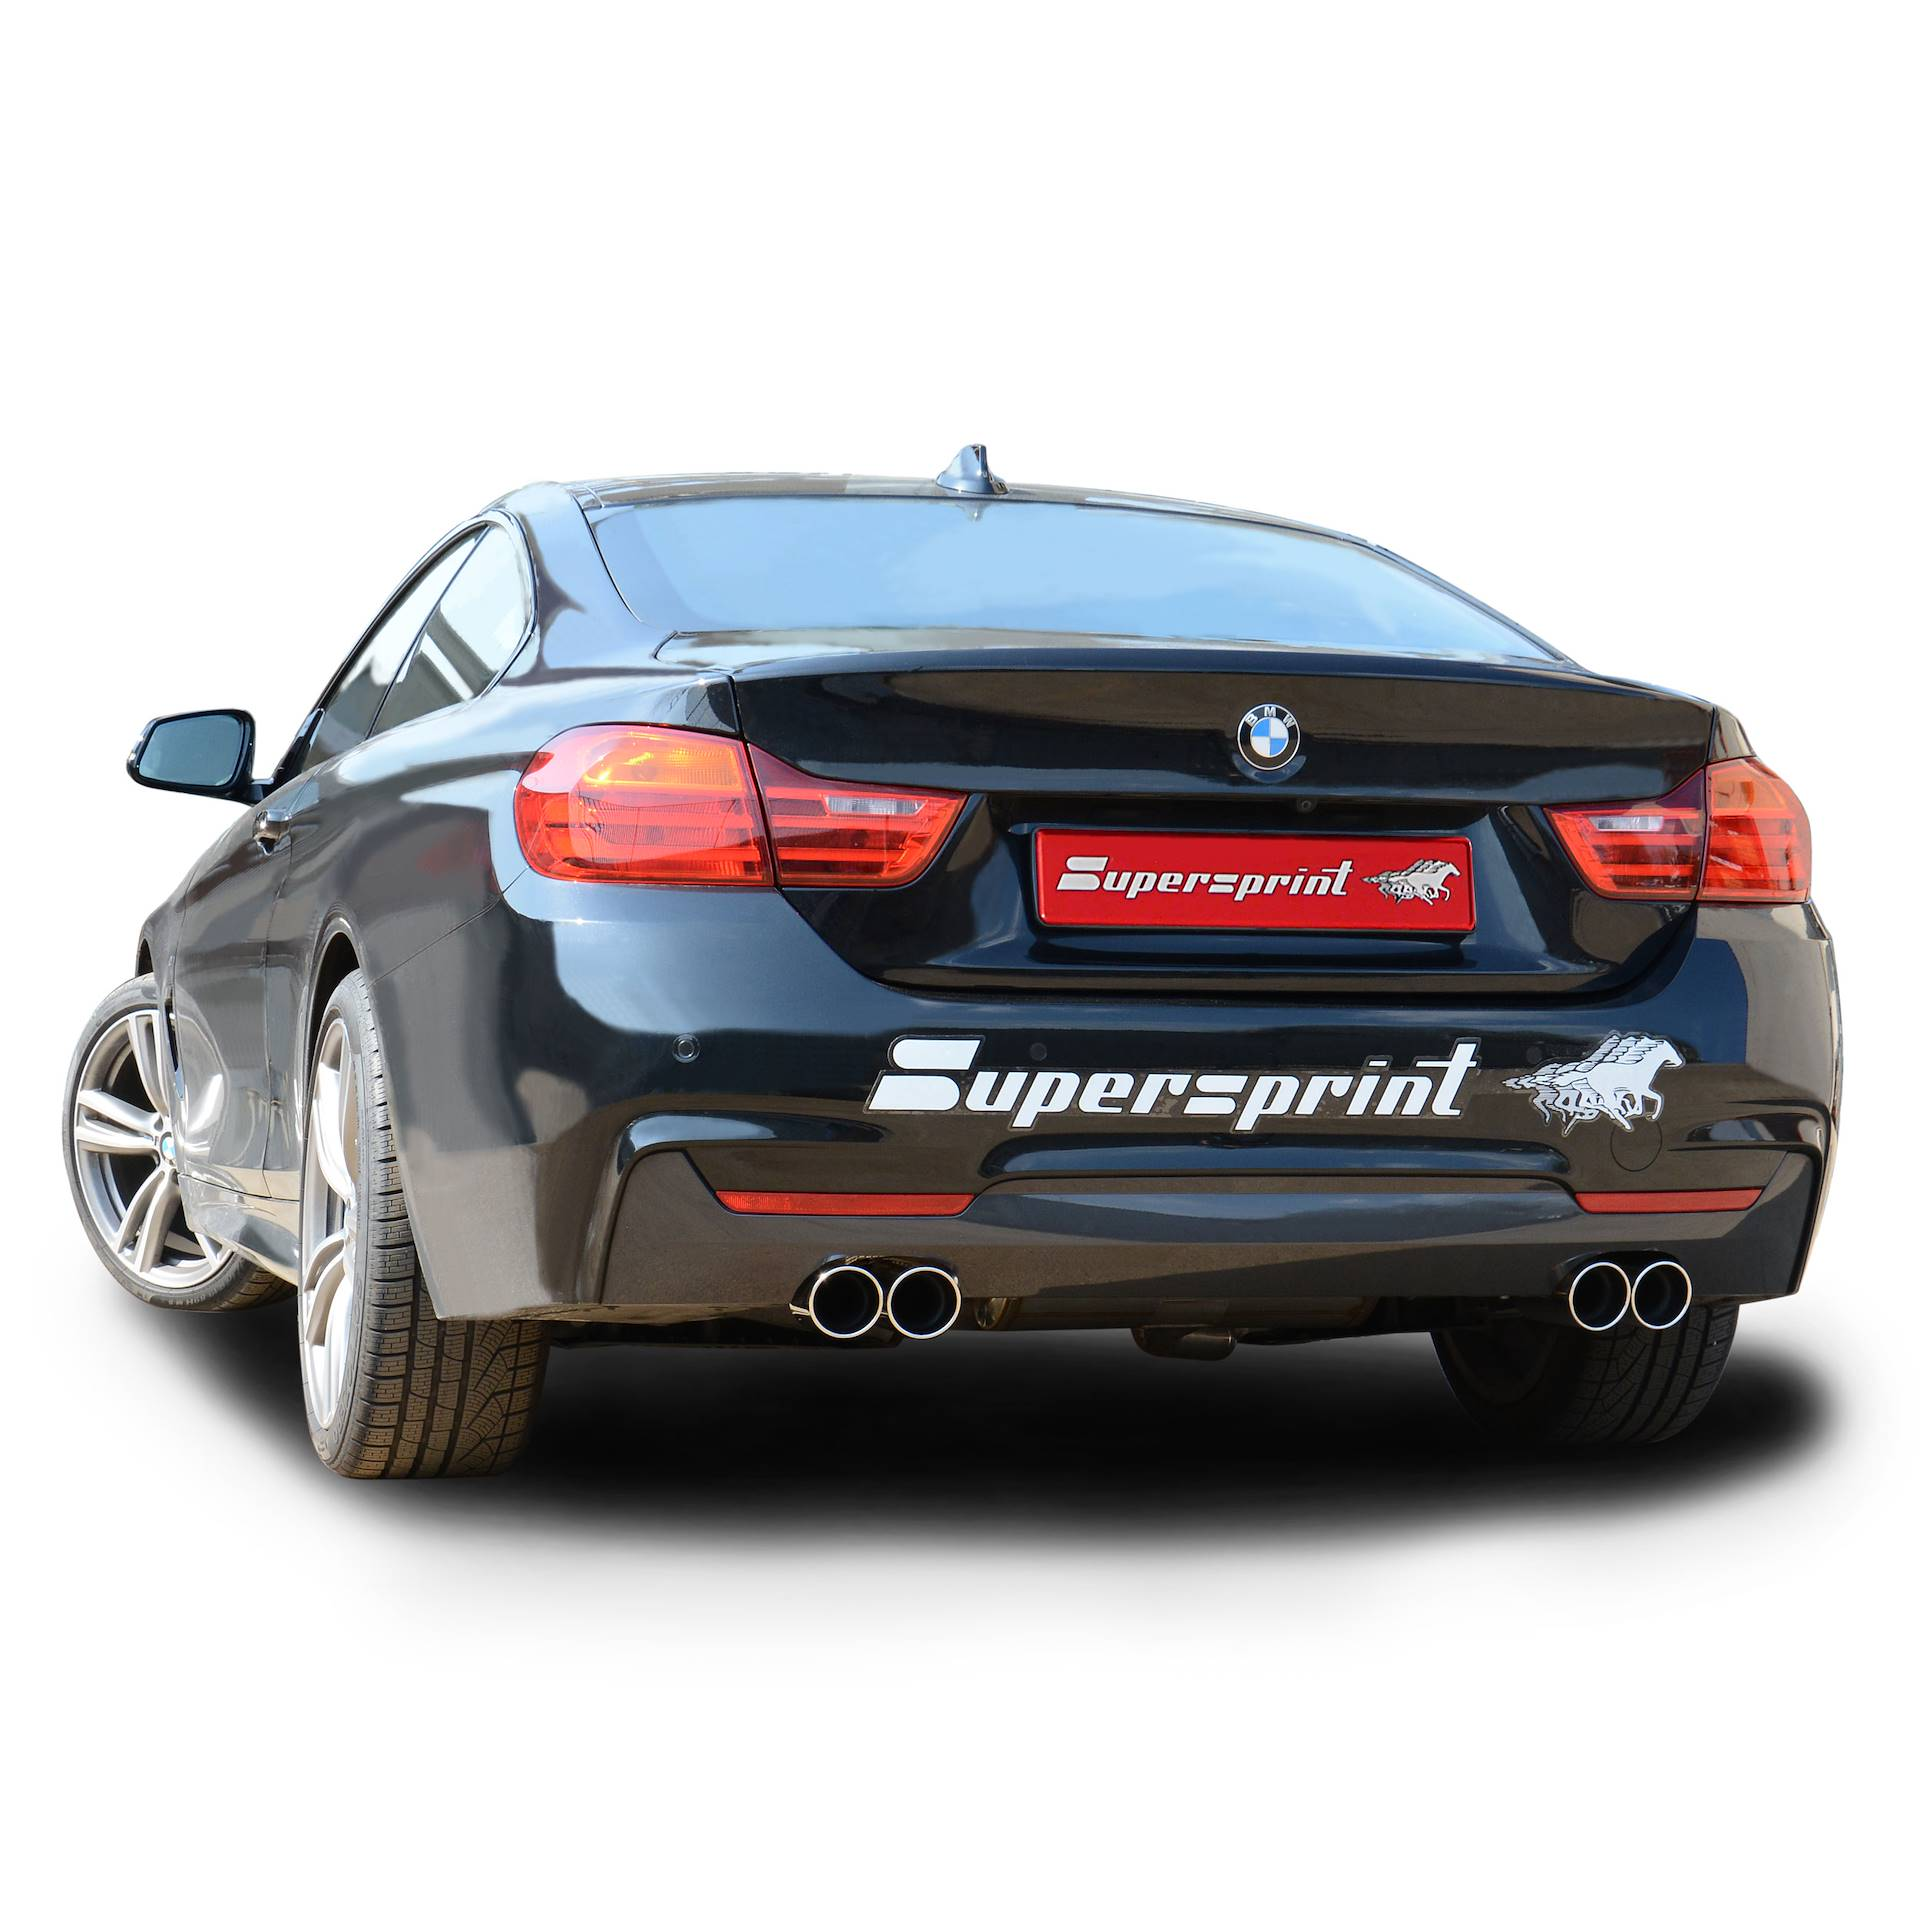 BMW - BMW F32 Coupè 435iX (304 Hp/306 Hp) 2013 -> 2016